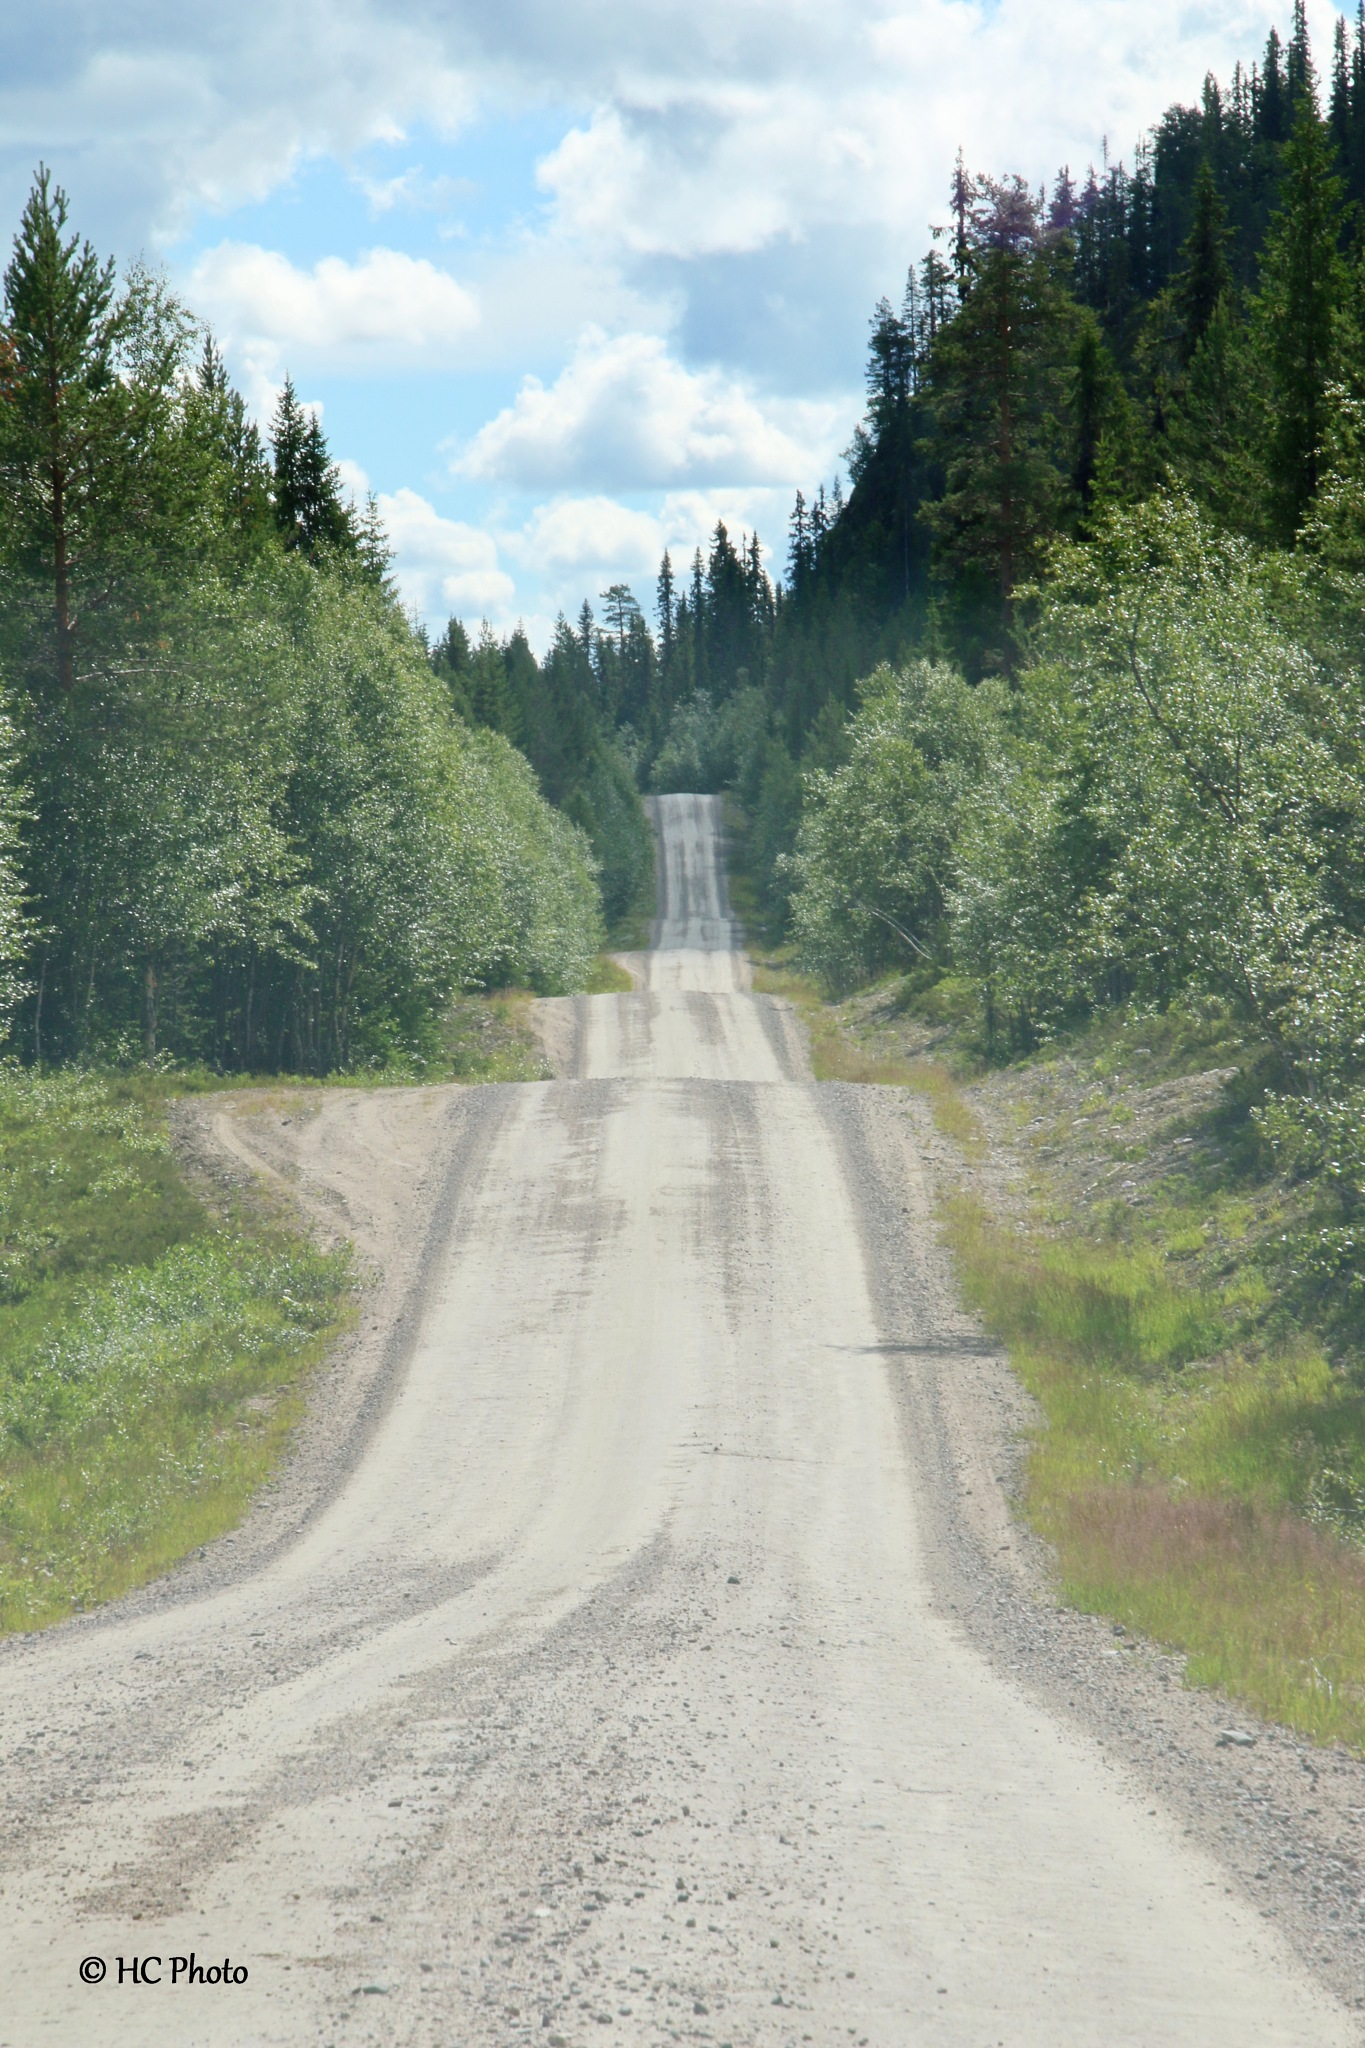 Off road in Sweden by Henk van der Craats